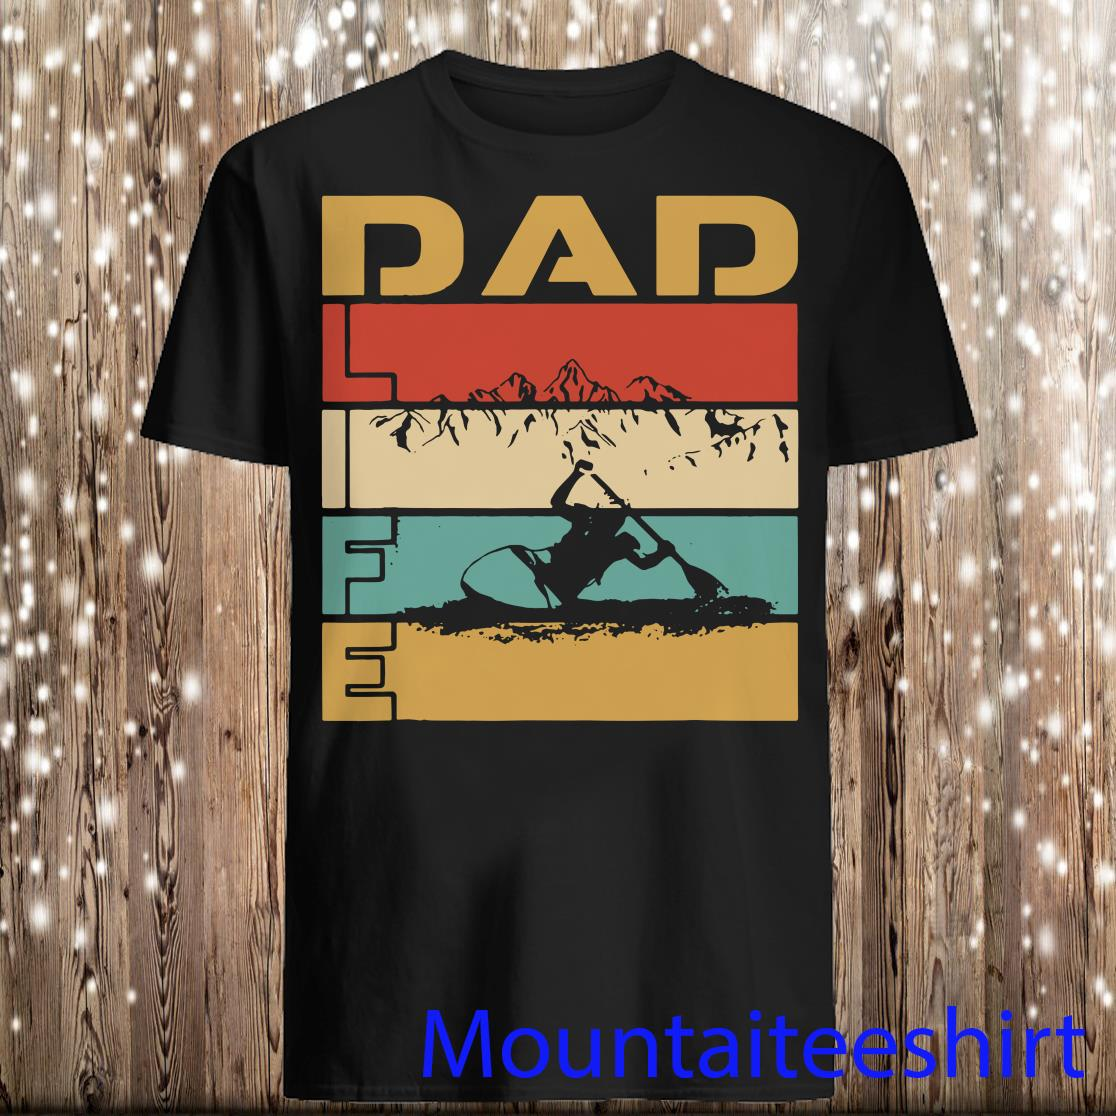 Retro Vintage Best Dad Life Kayaking Adventure Sports Shirt